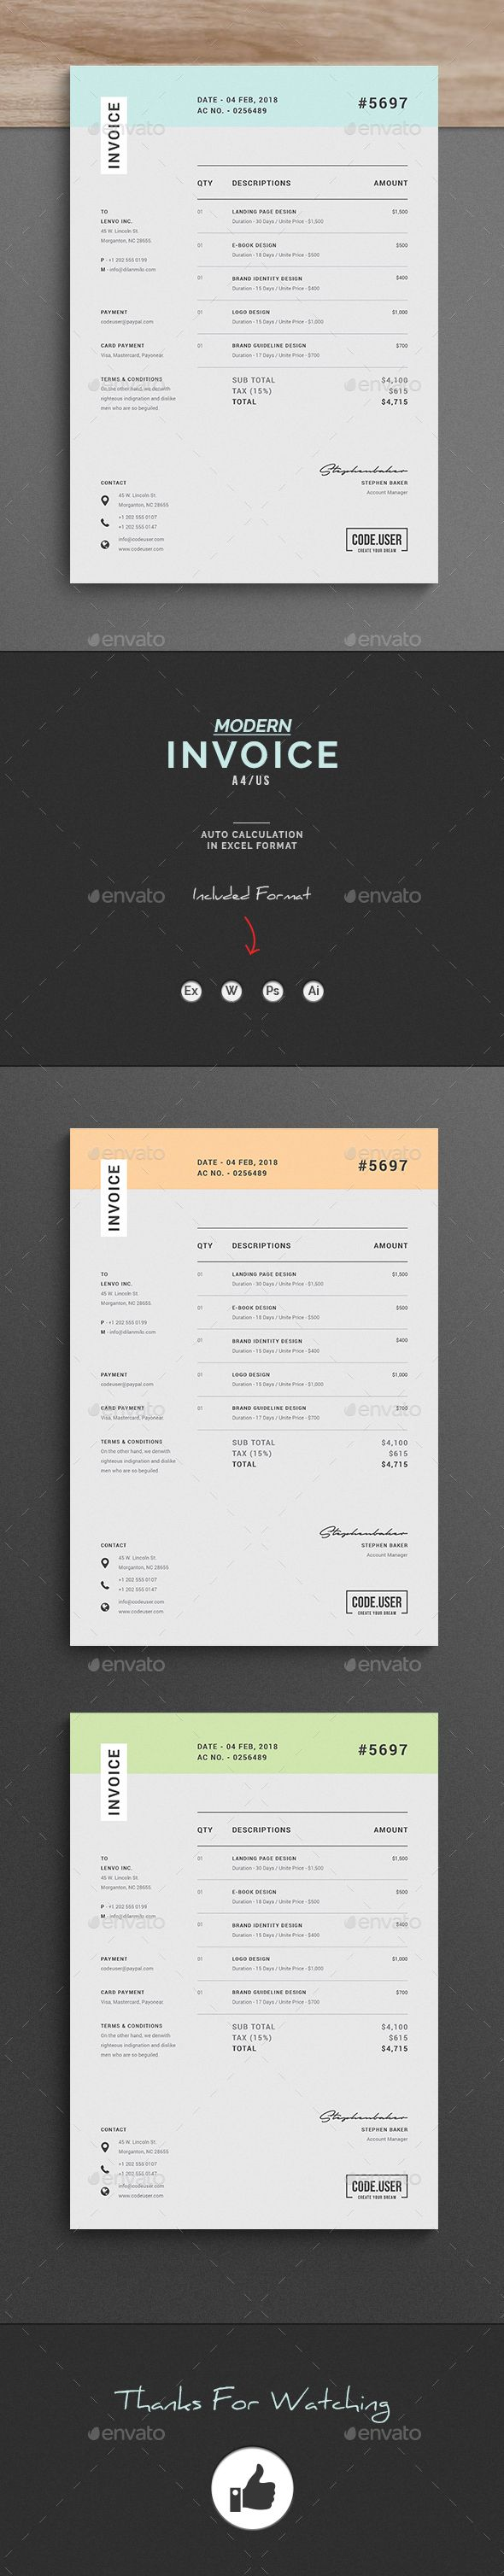 Invoice By Upra Invoice Excel Template Use This Invoice For